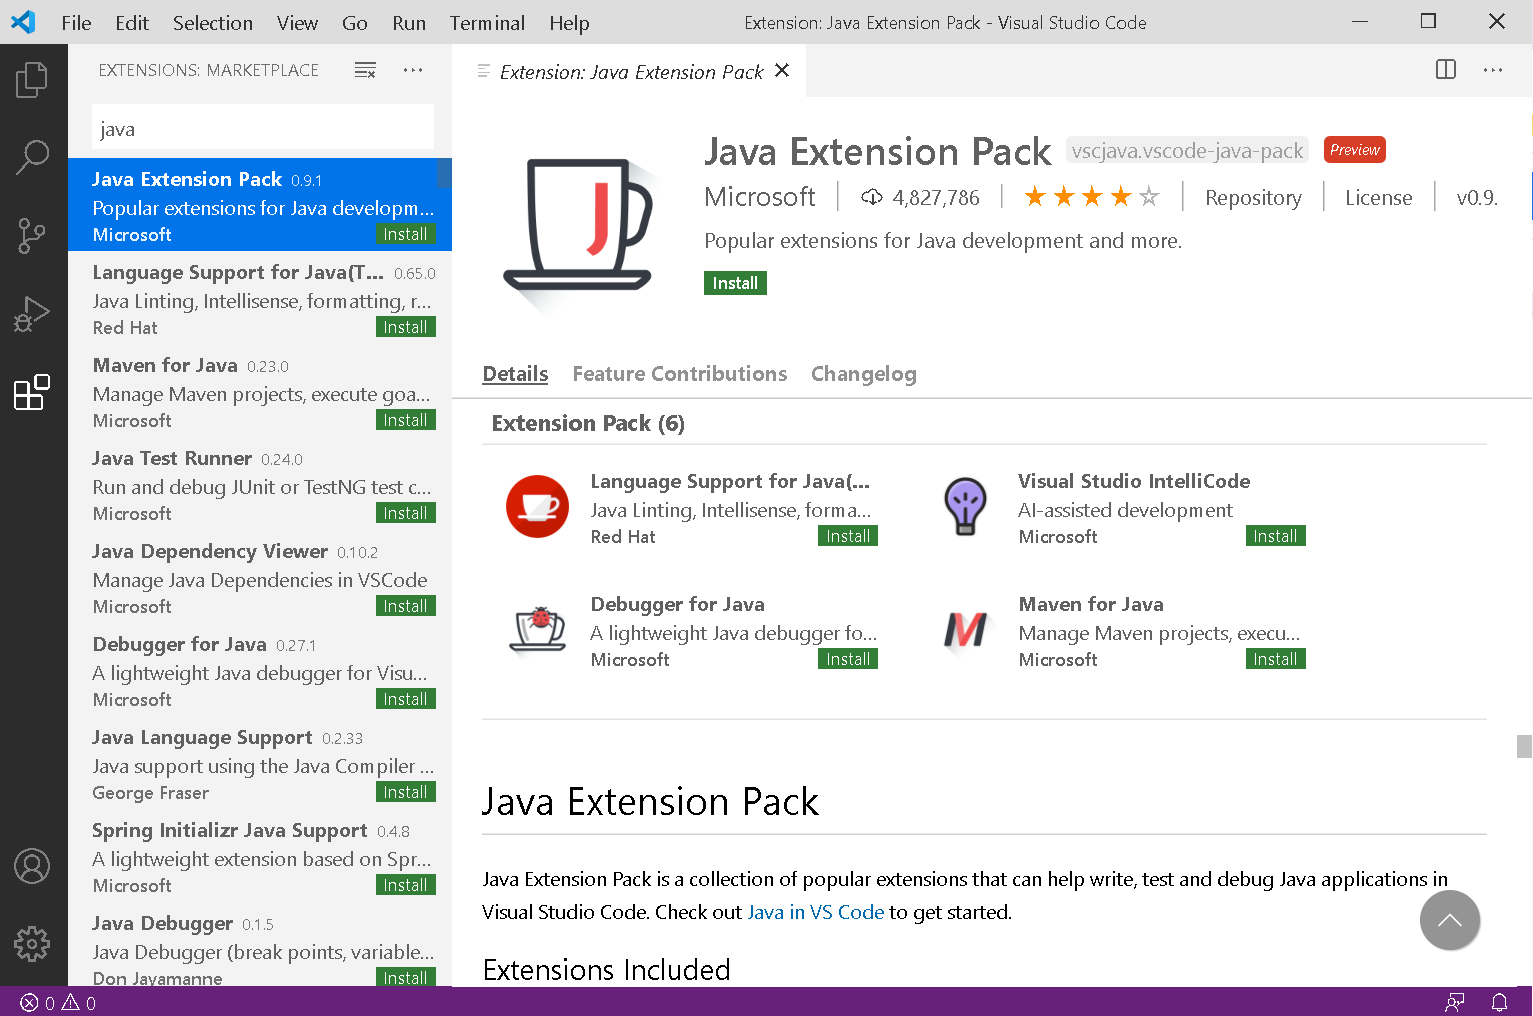 Java Extension Pack検索